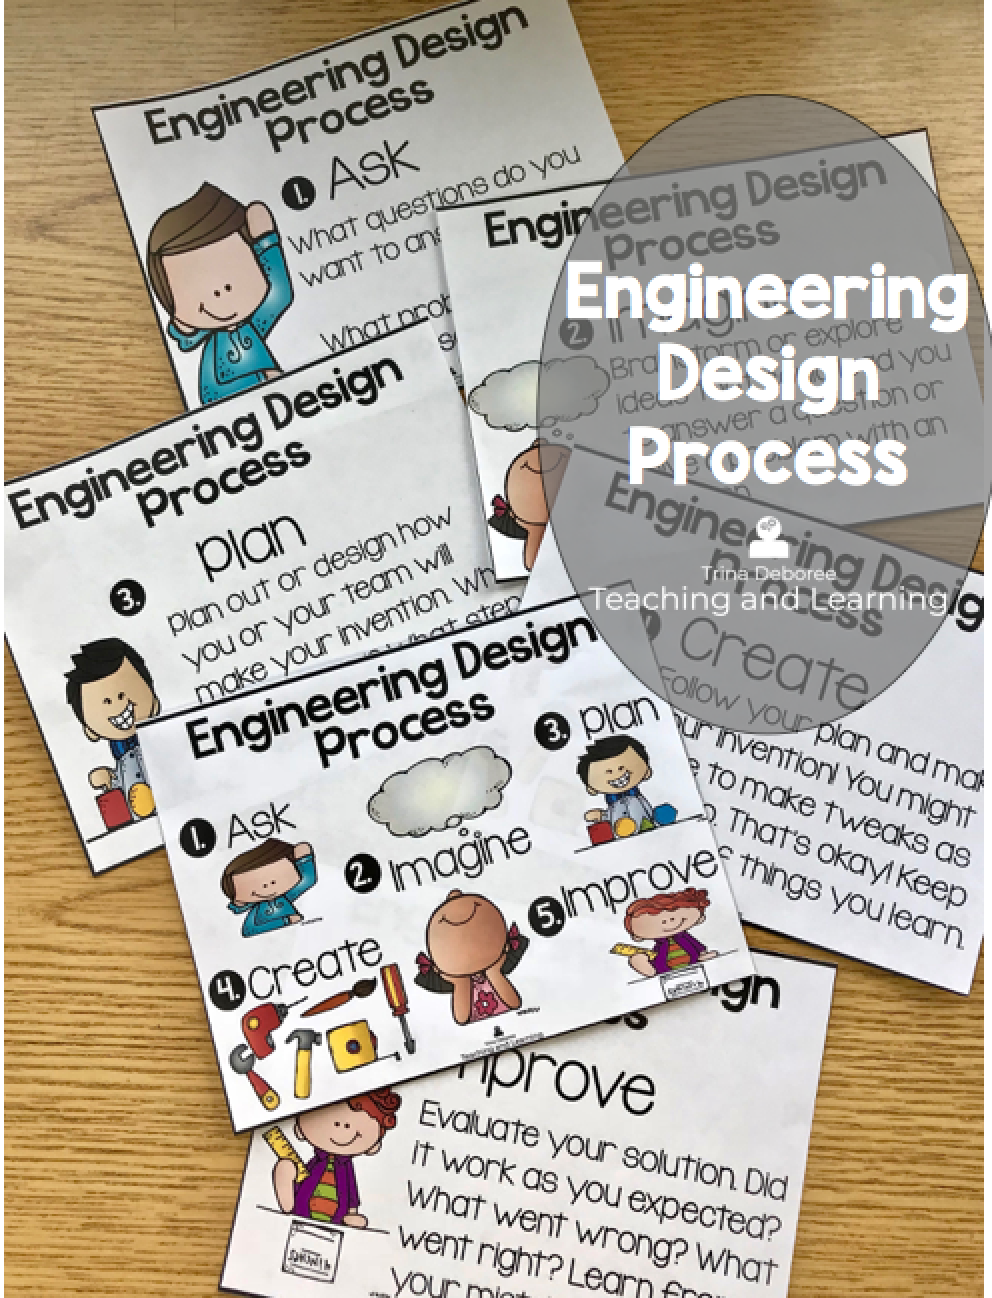 How to Introduce Practical Procedures in Your Makerspace Design Process